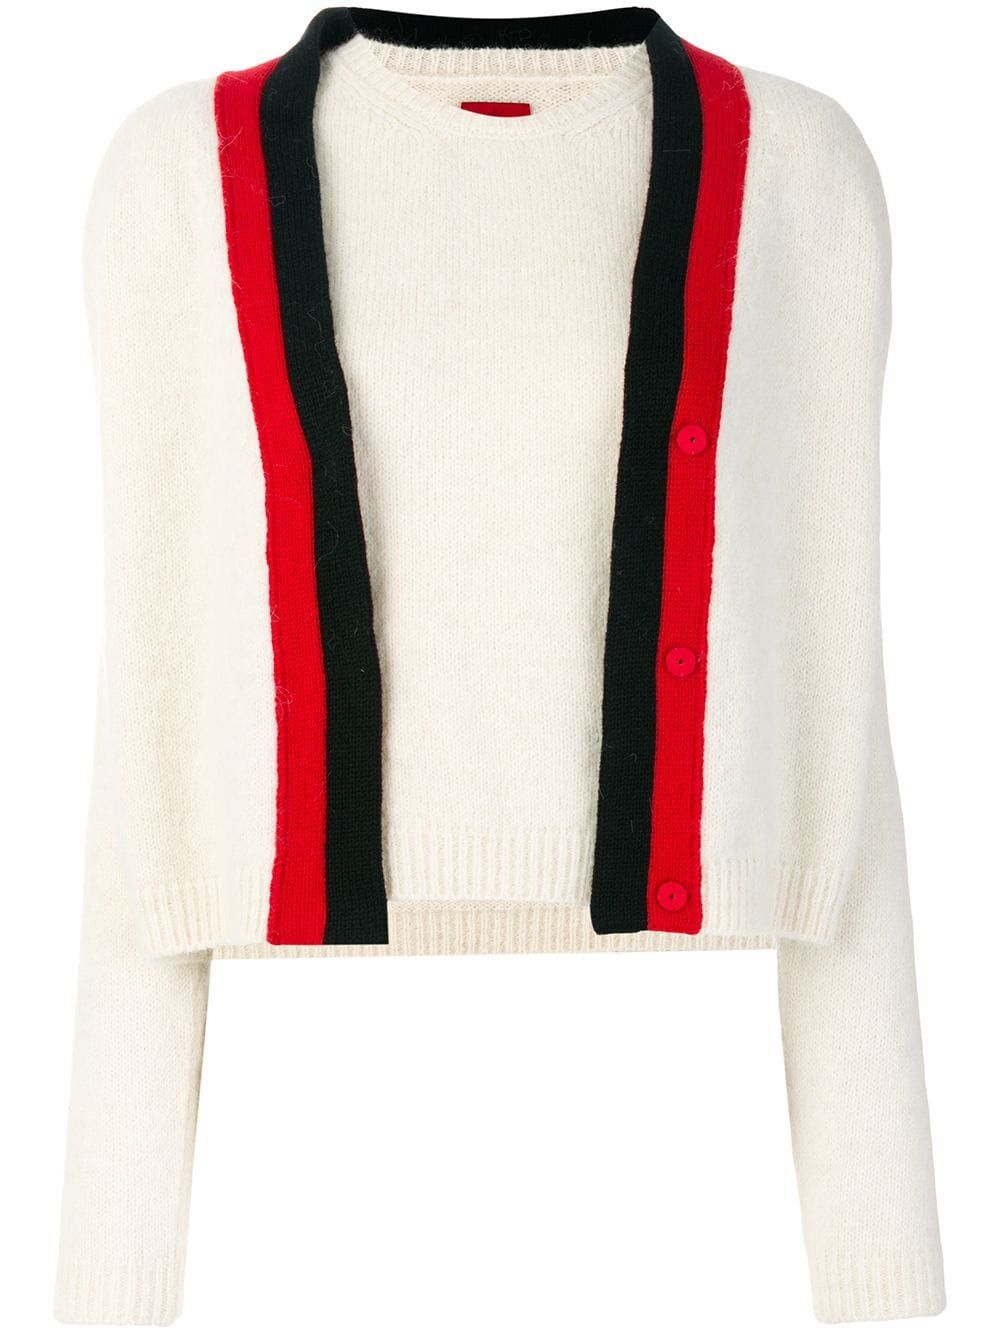 Moncler two piece knitted top White | Knit top, Knitwear